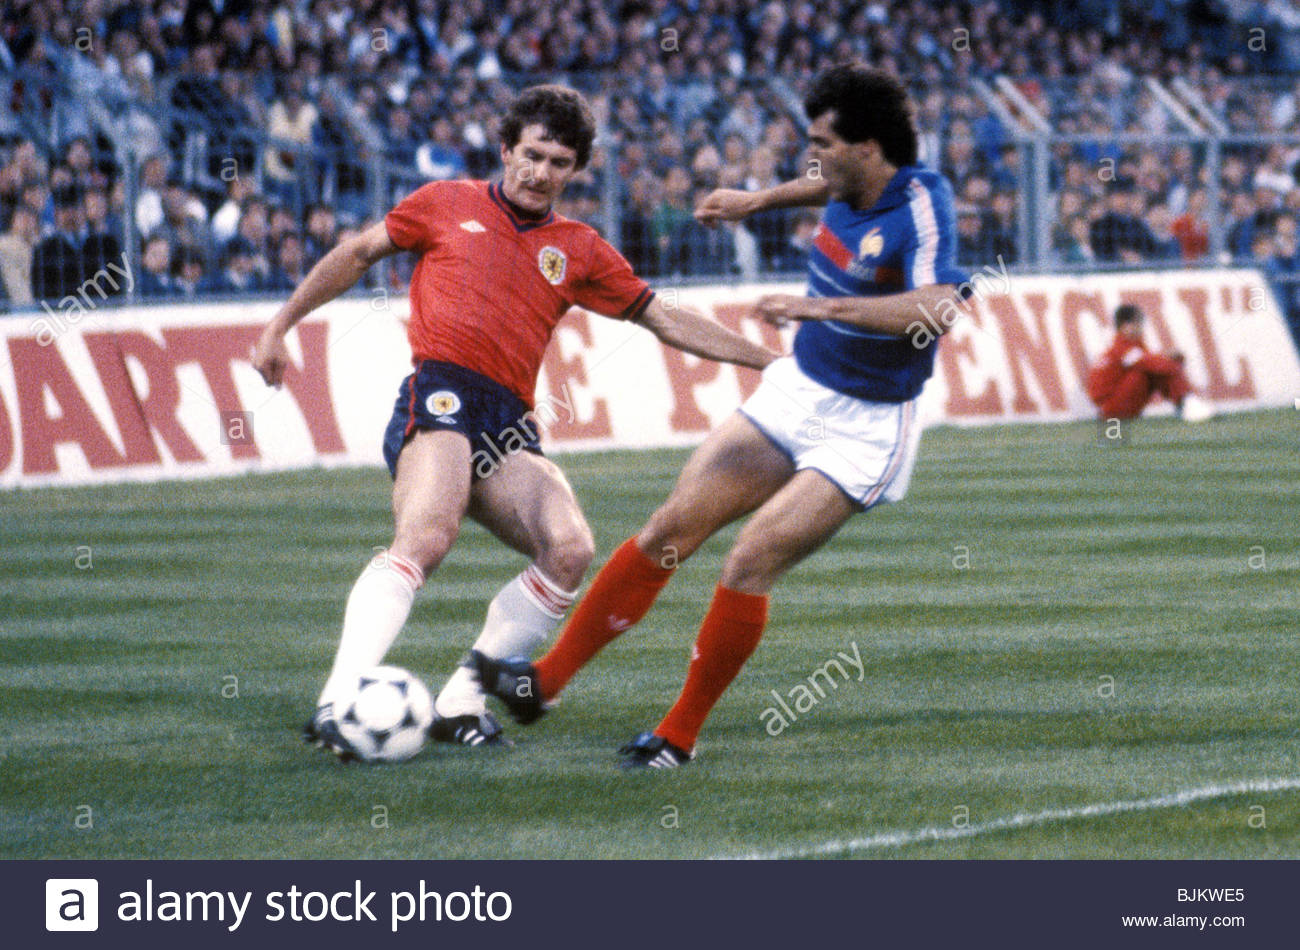 01/06/84 INTERNATIONAL FRIENDLY FRANCE V SCOTLAND (2-0) STADE VELODROME - MARSEILLE Scotland's Ray Stewart (left) - Stock Image